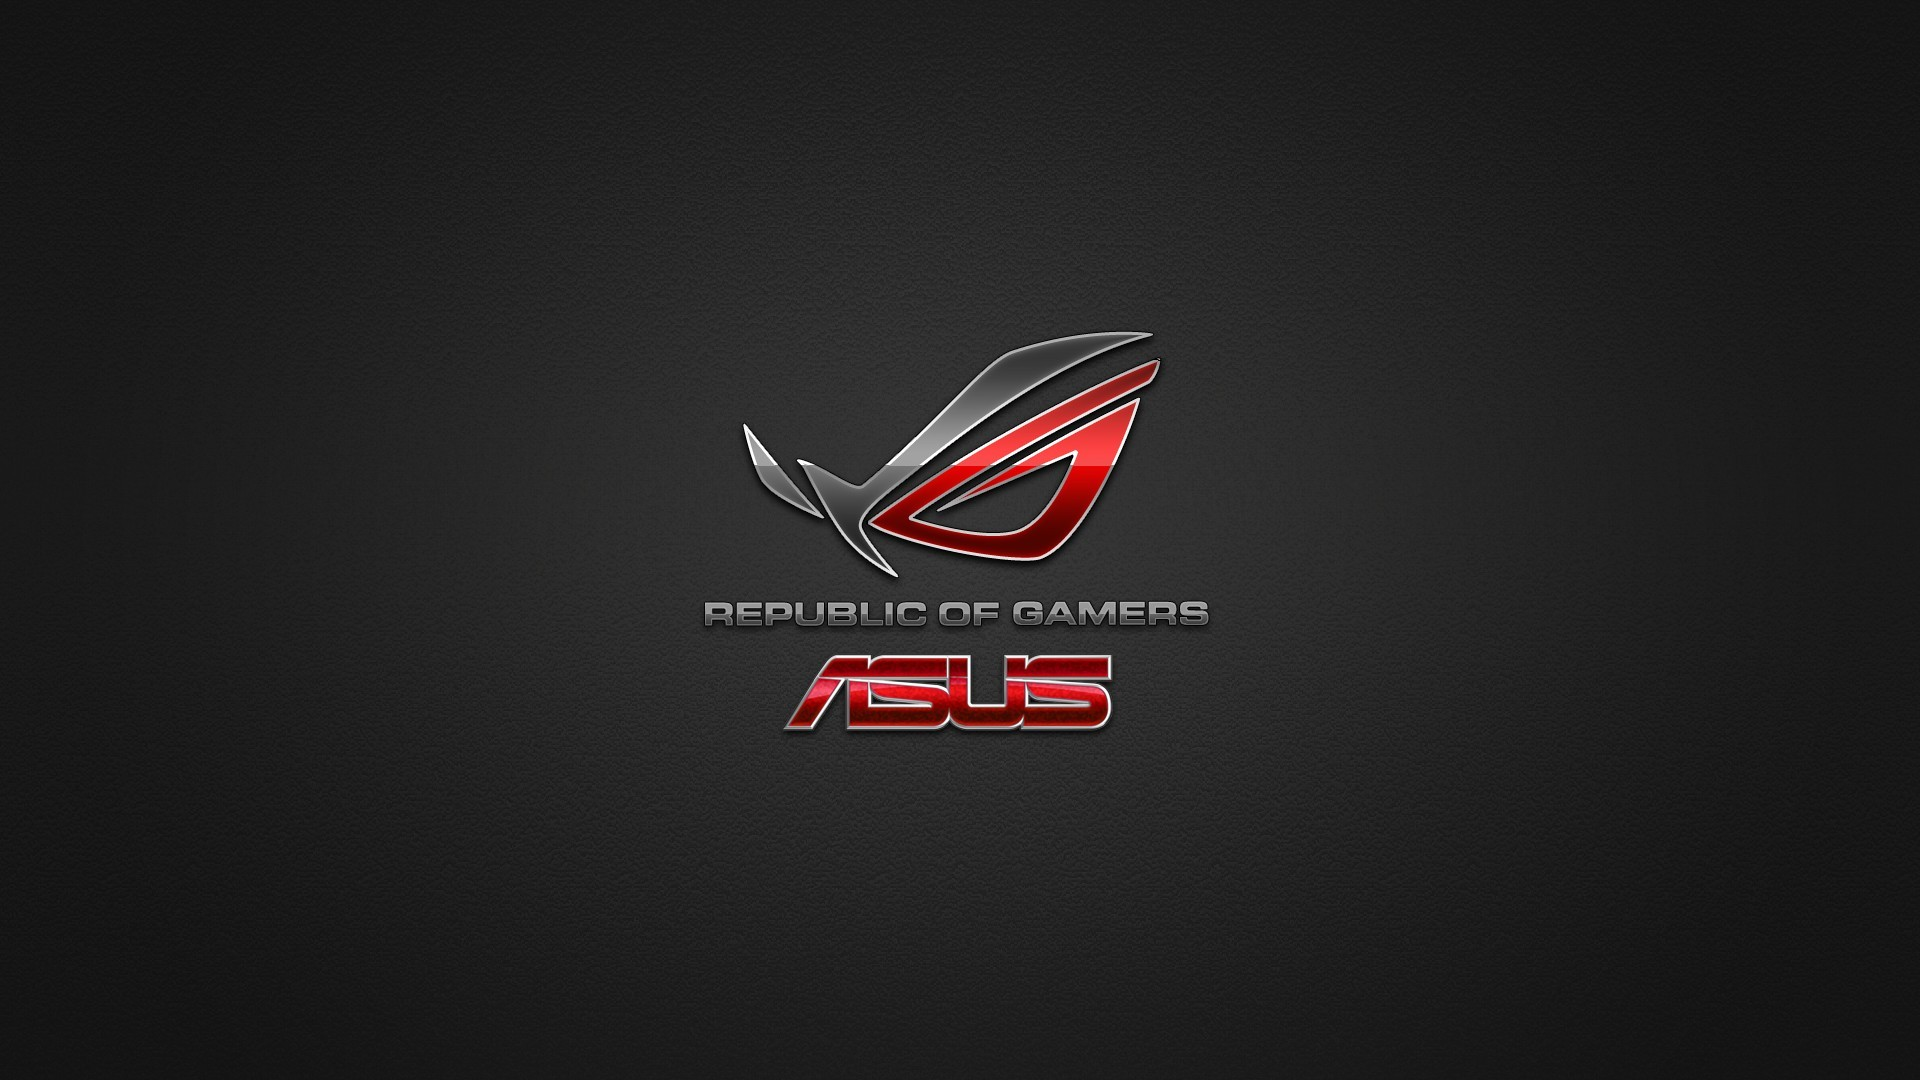 asus wallpaper hd dark rog Wallpaper 1920x1080